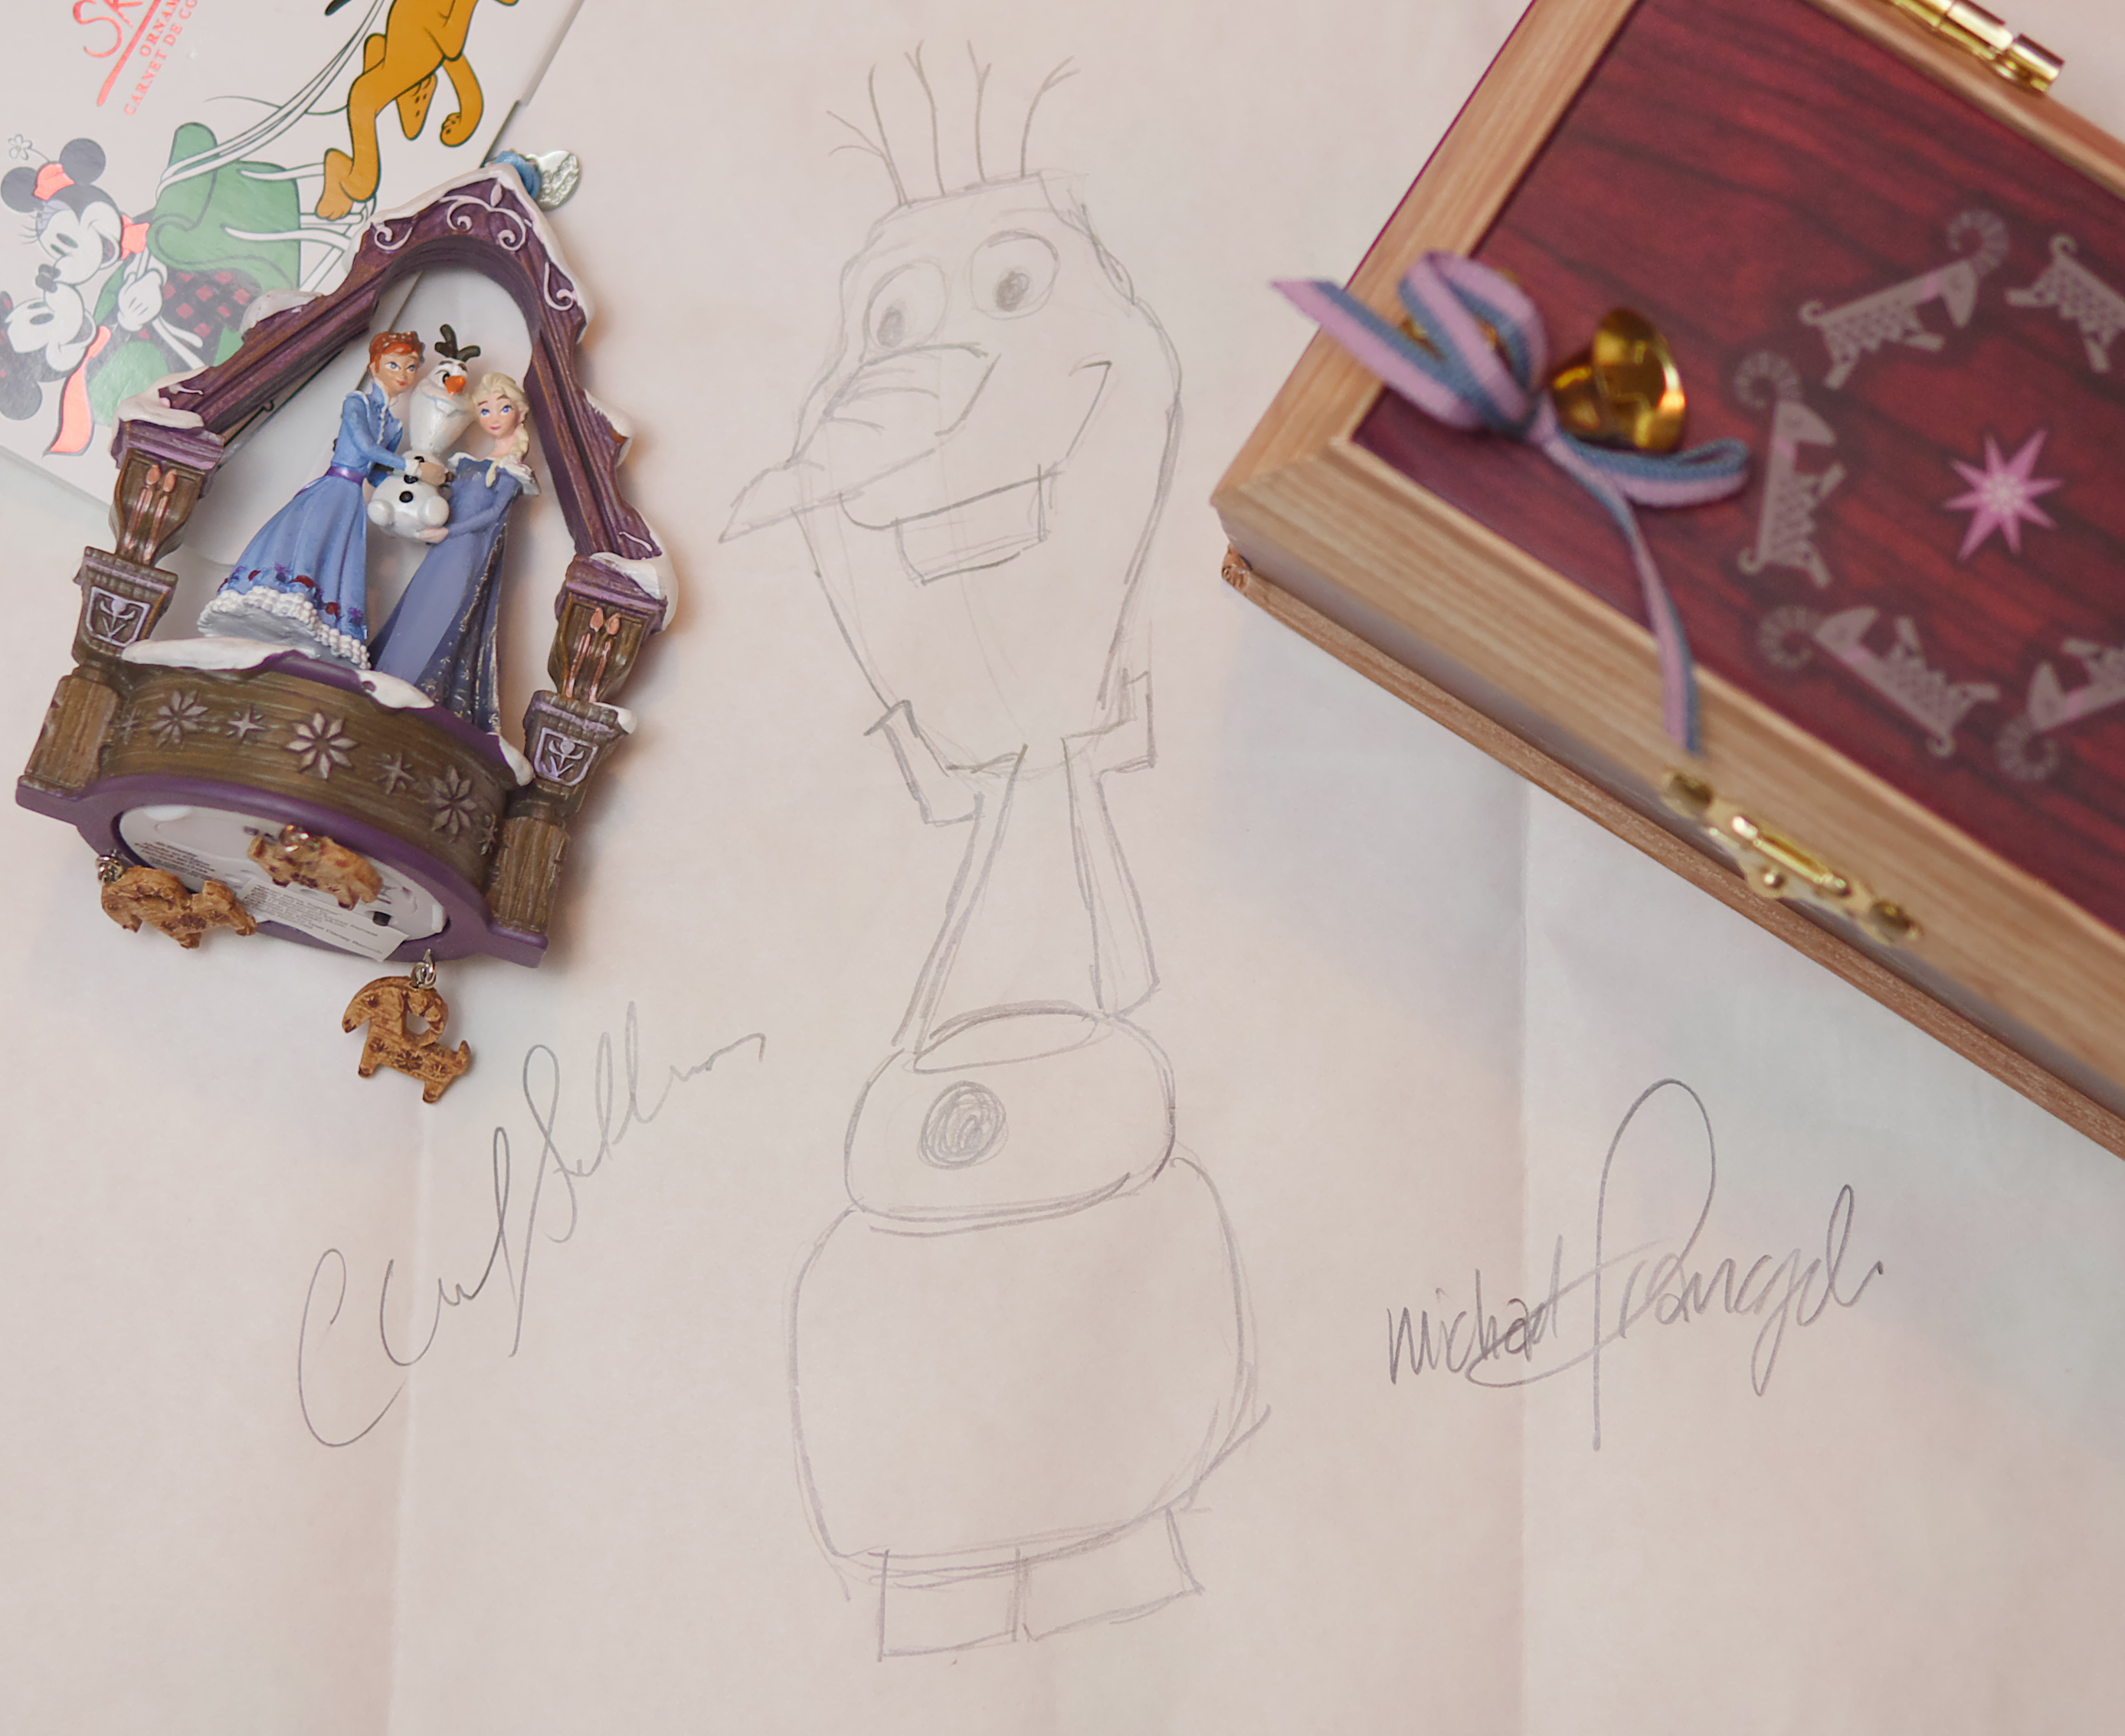 Theresa Pickett of Theresa's Reviews received a drawing tutorial from the animators of Olaf's Frozen Adventure.